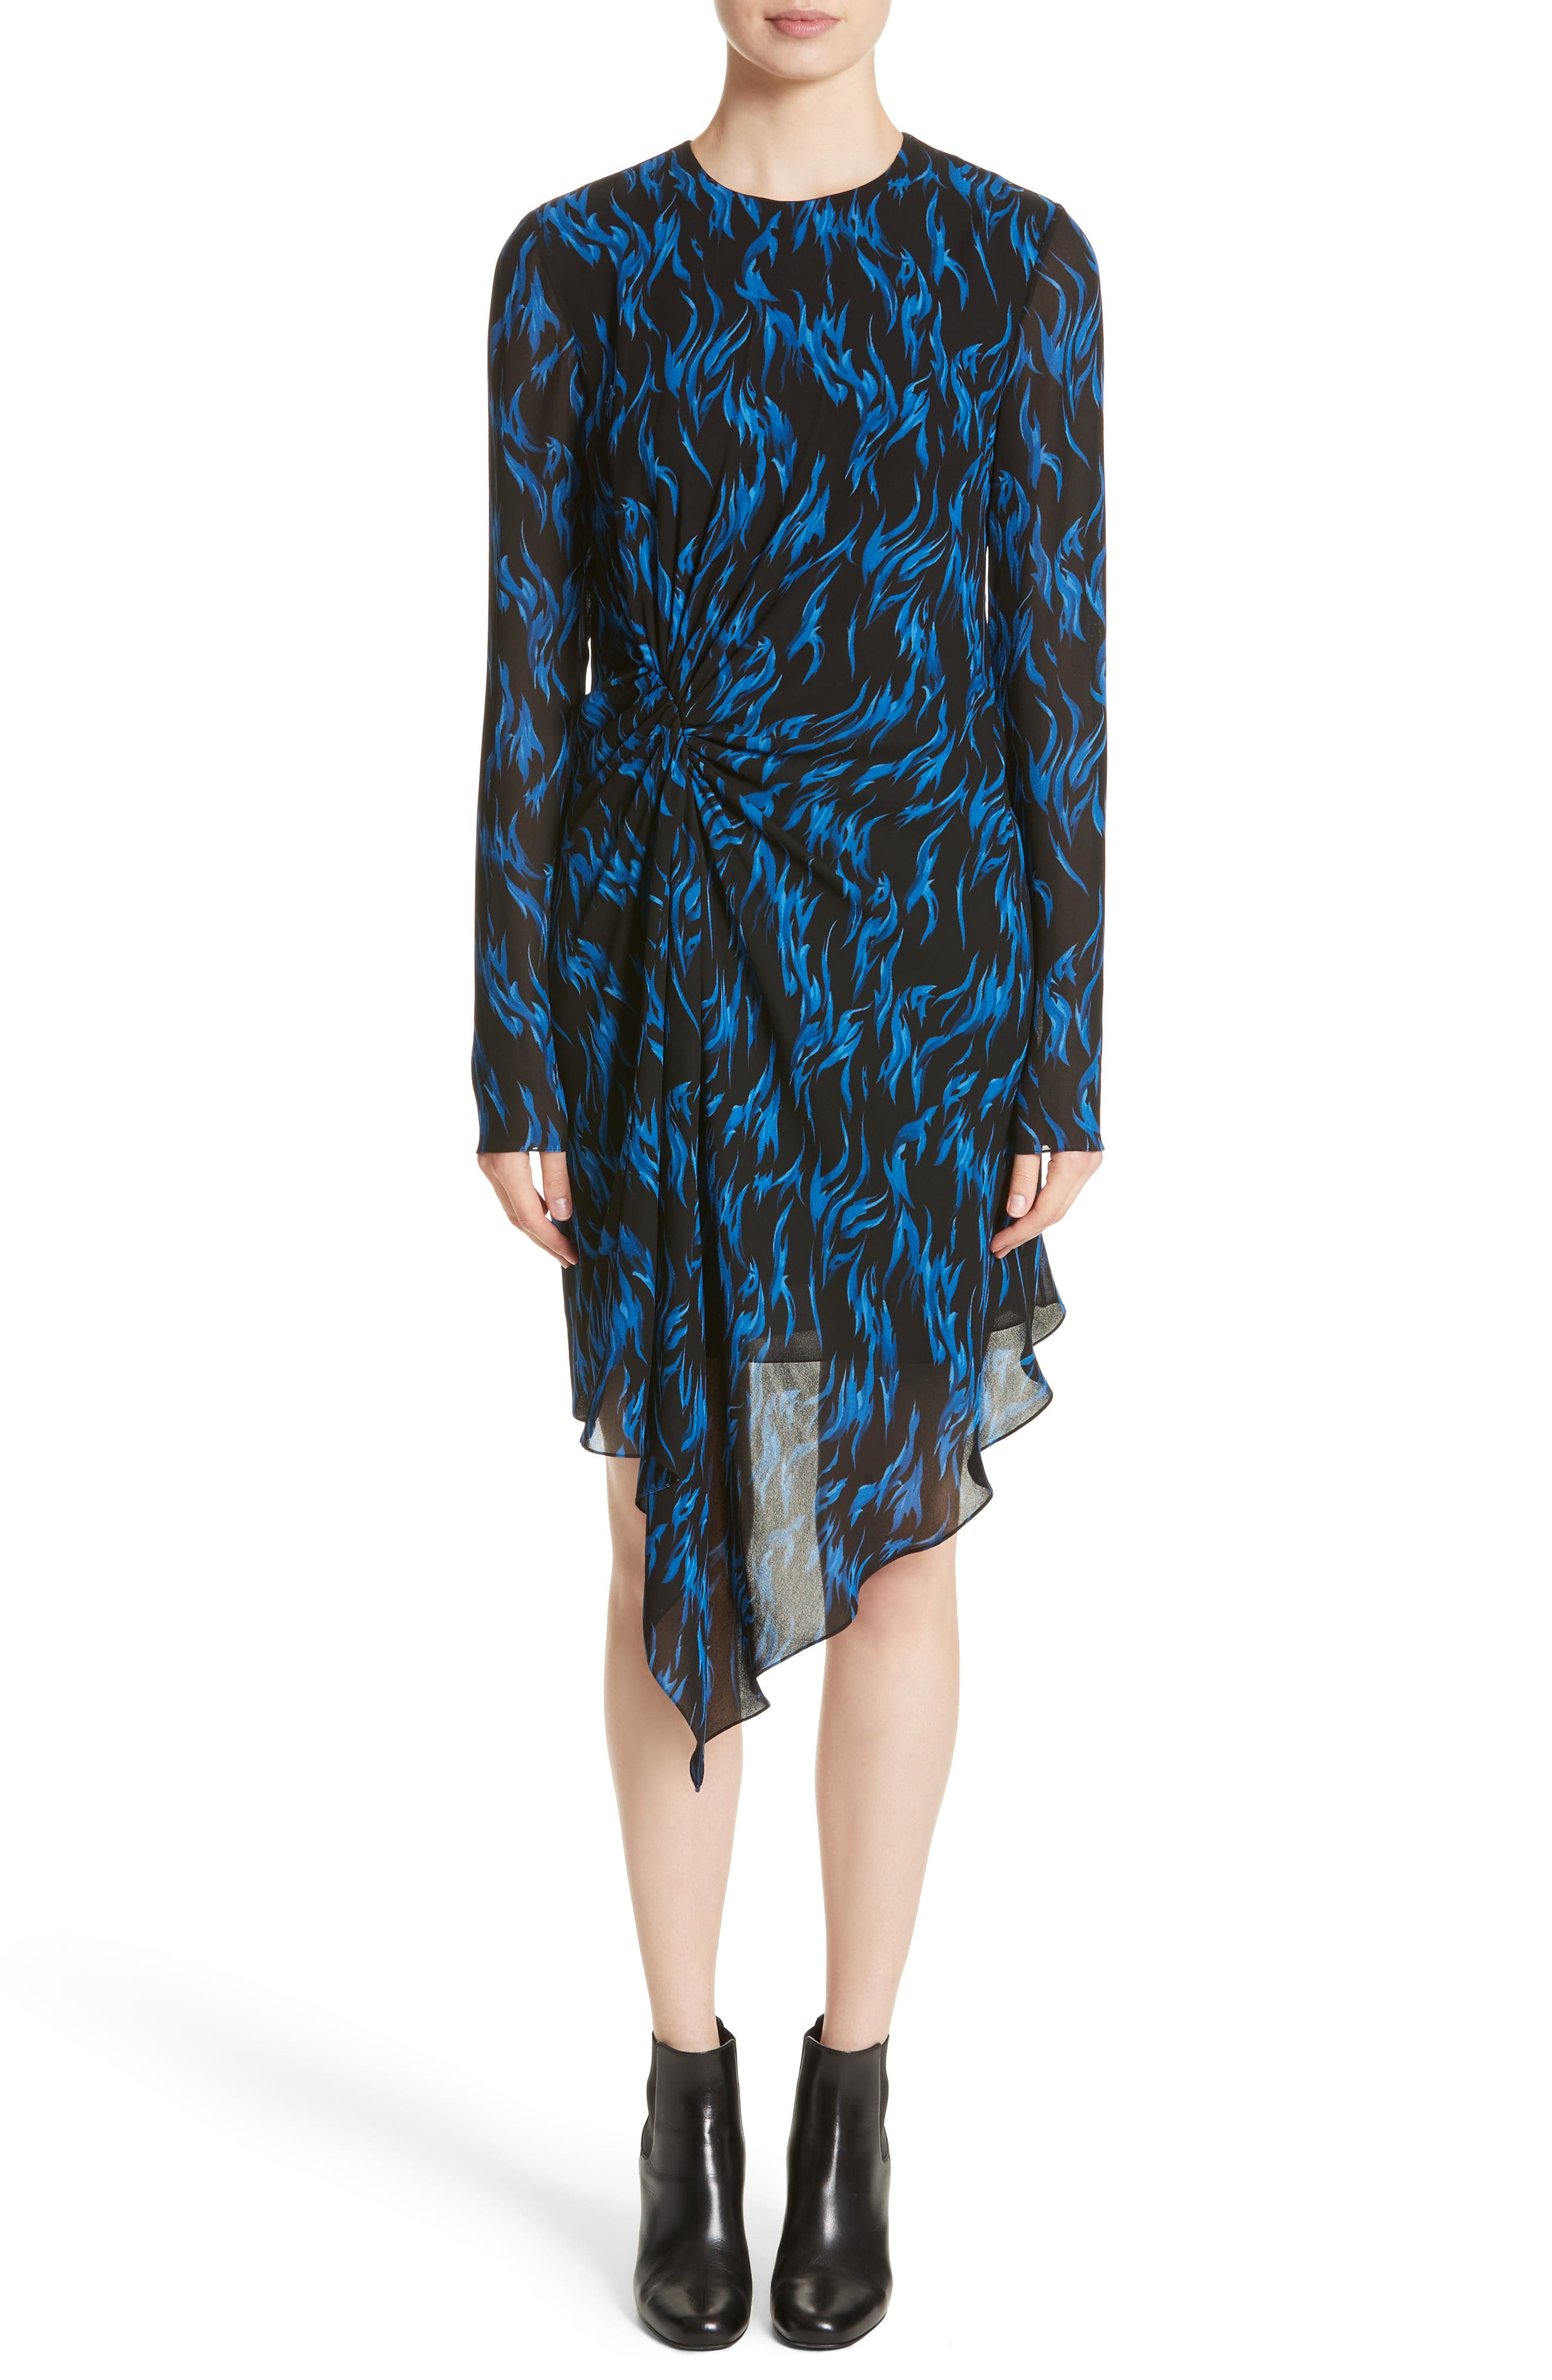 Saint Laurent Flame Print Crepe Asymmetrical Dress